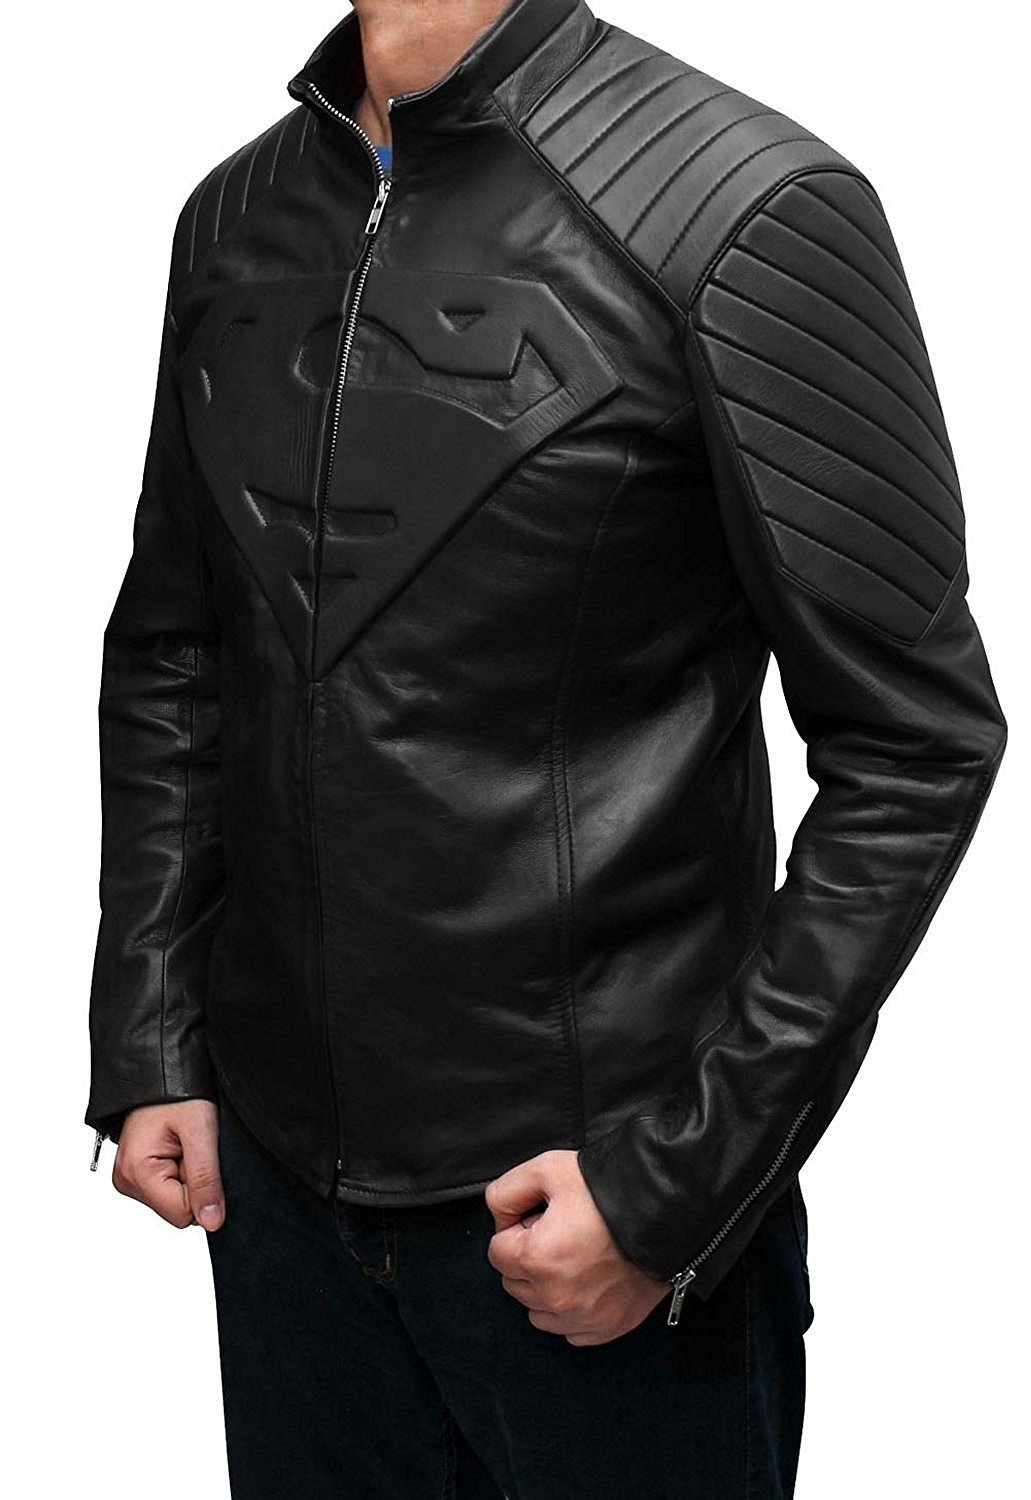 Mens Superman Celebrity Costume Black Leather Jacket (L, SUPERMAN BLACK) by fjackets